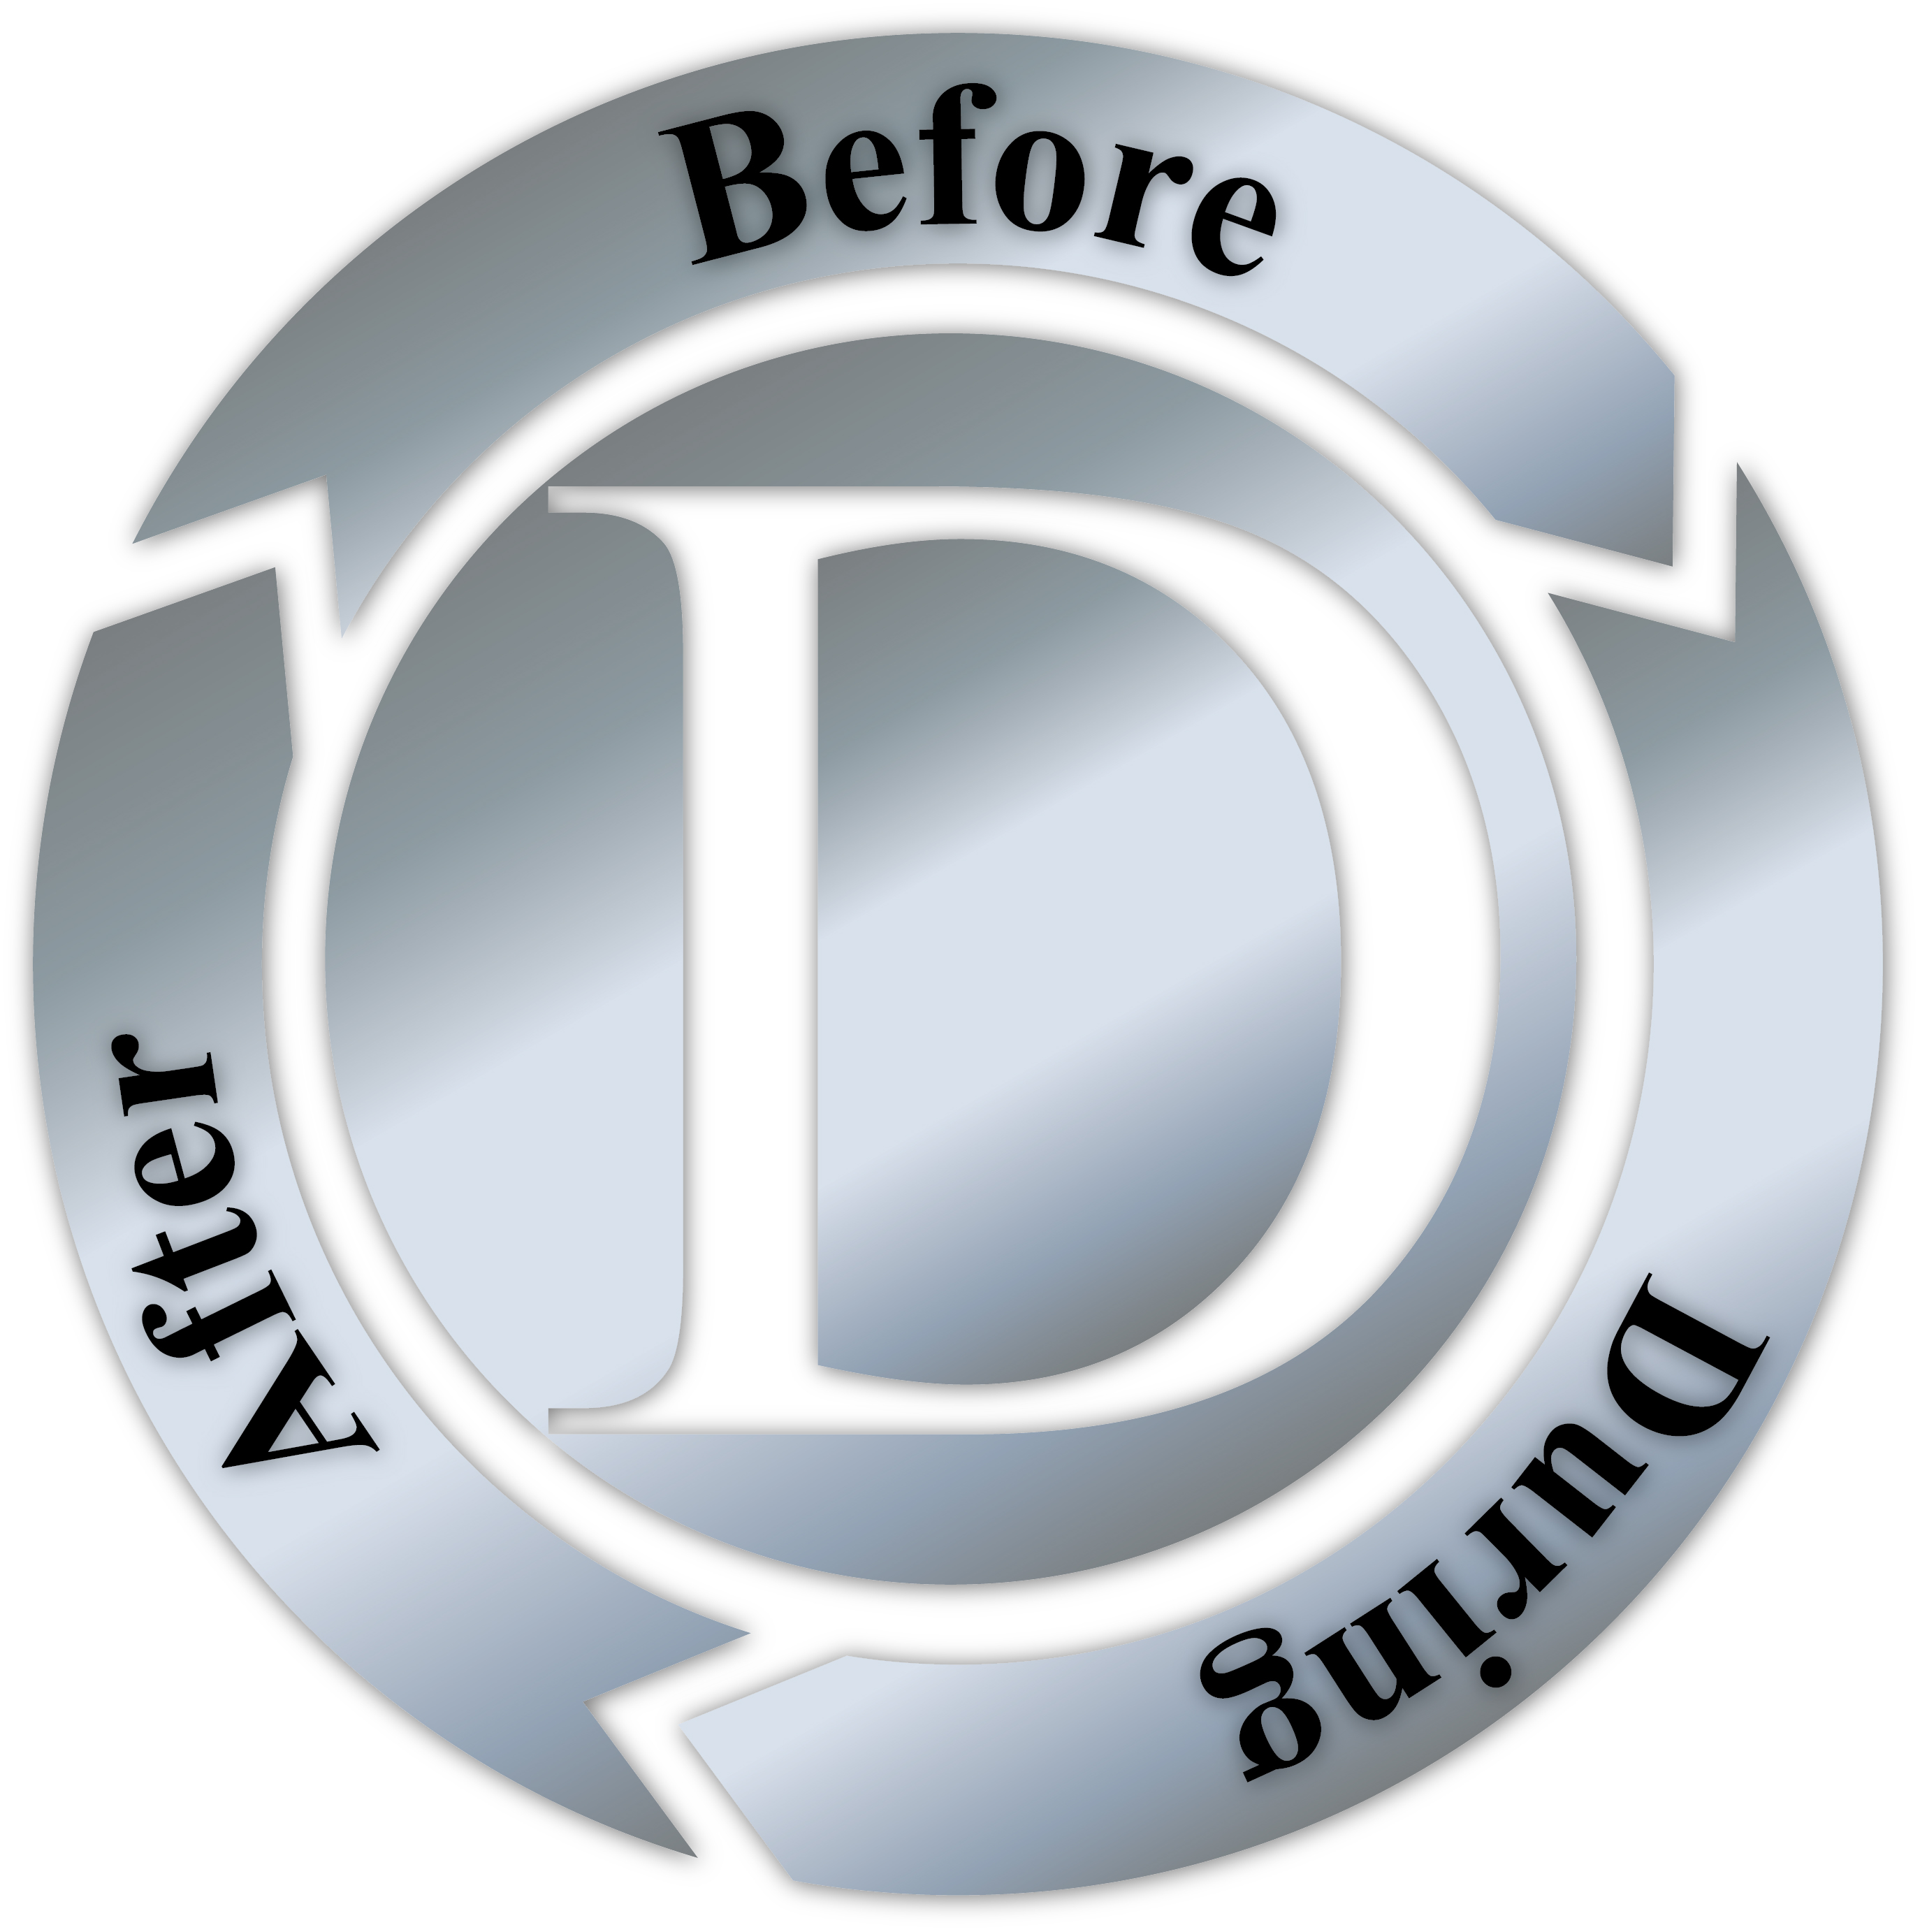 DTA_logo_vector copy (1).jpg